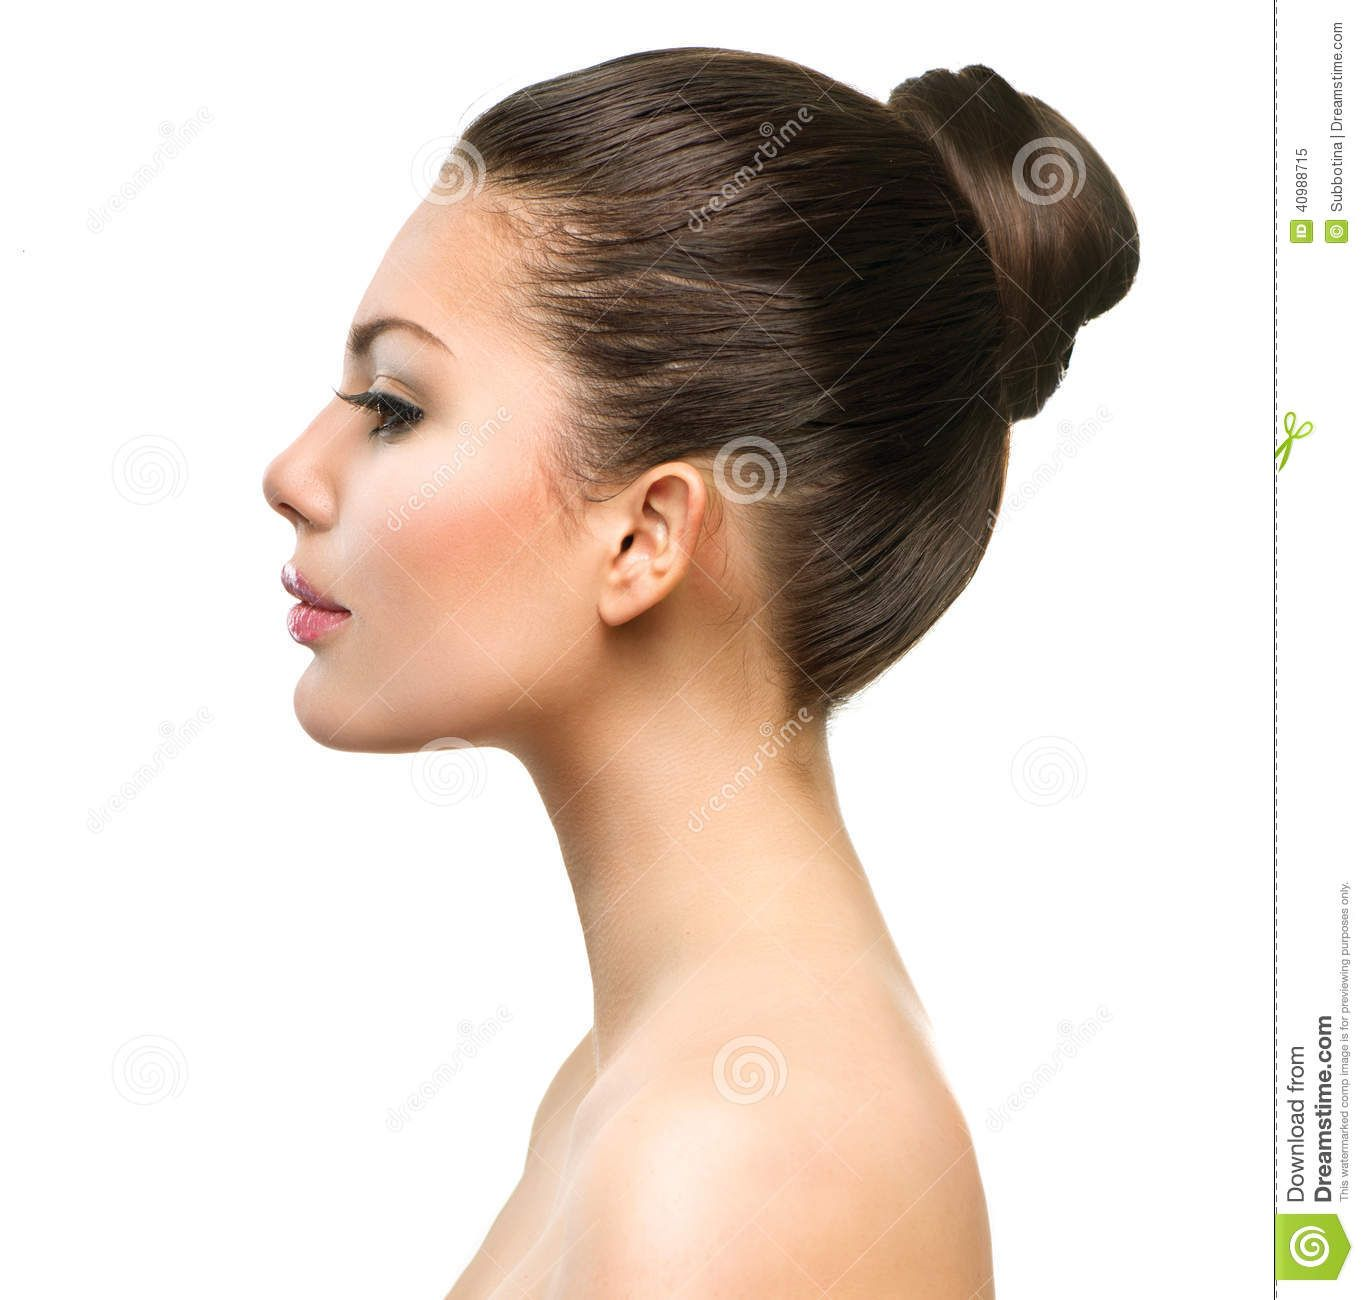 frauen profile